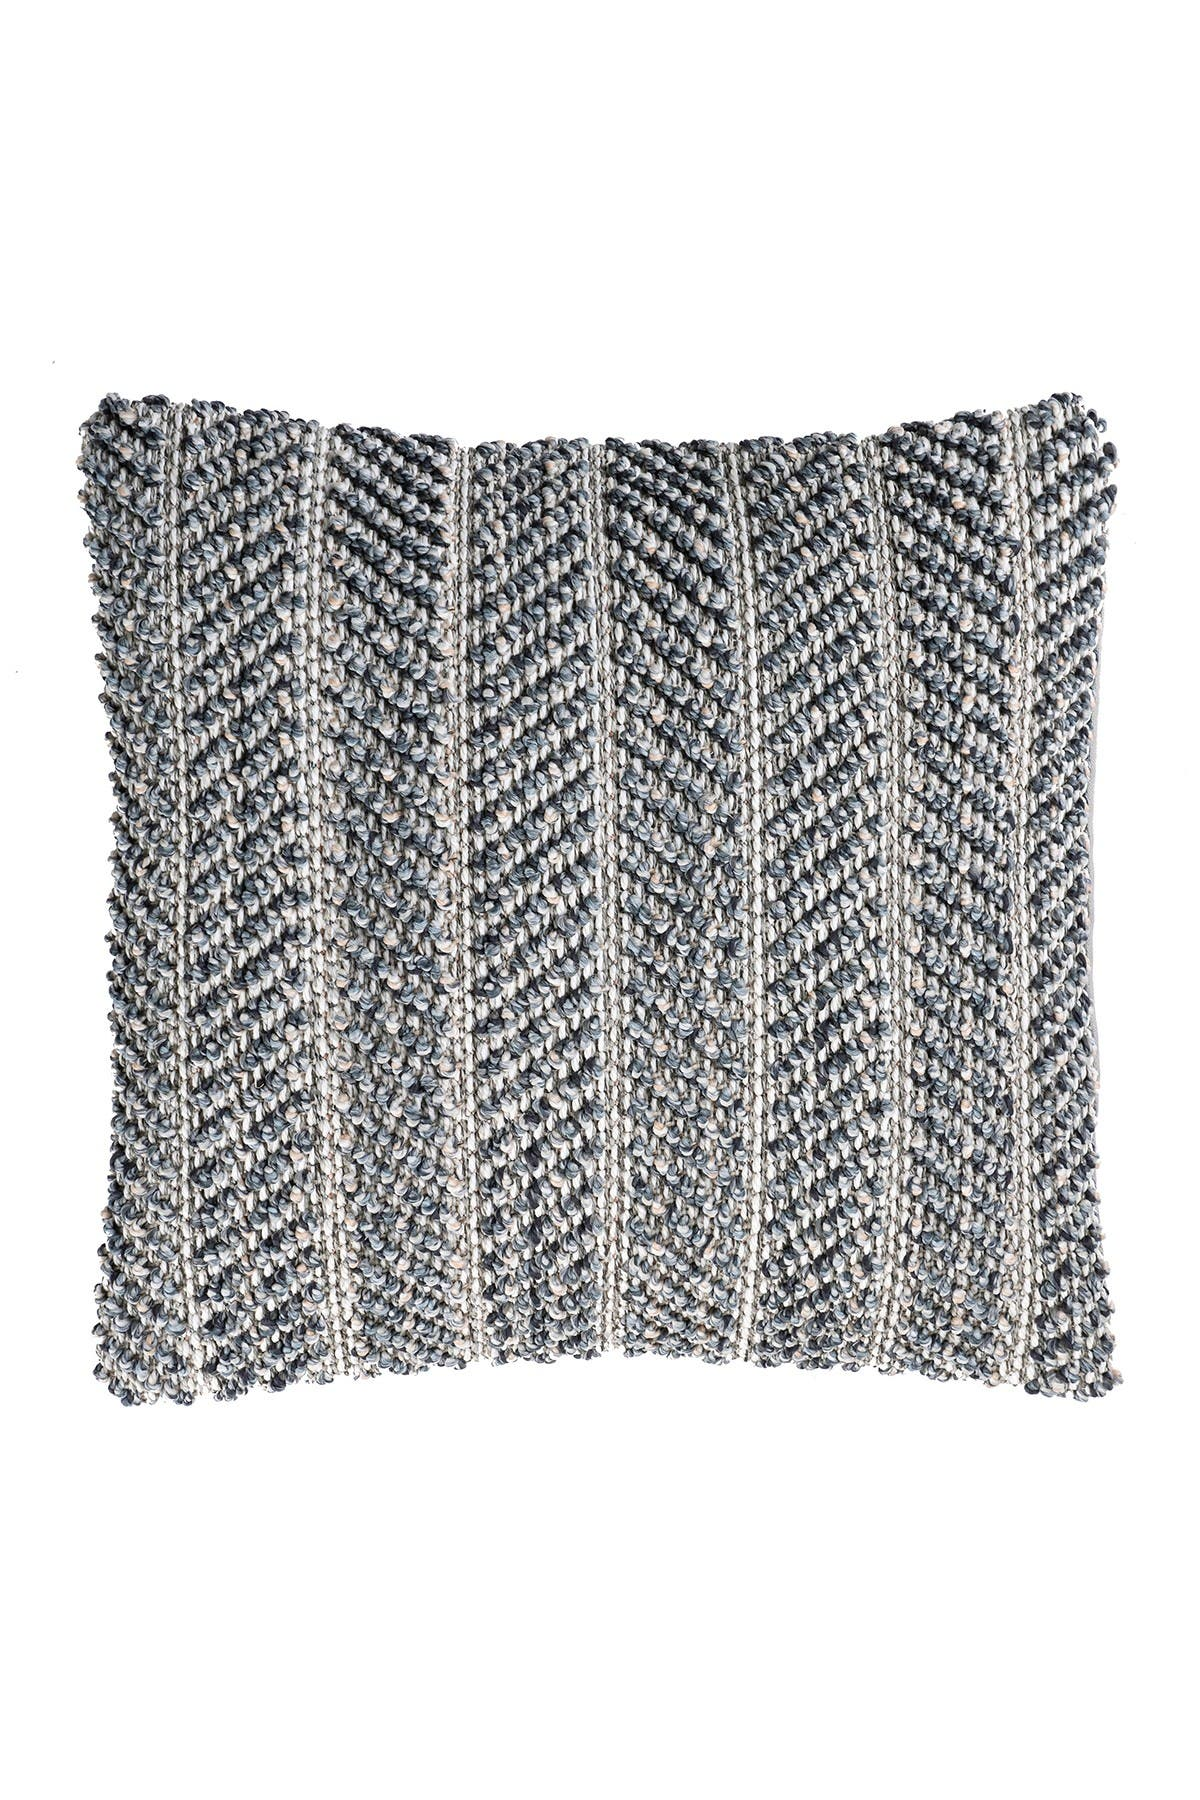 Image of nuLOOM Vega Textured Stripe Throw Pillow Cover